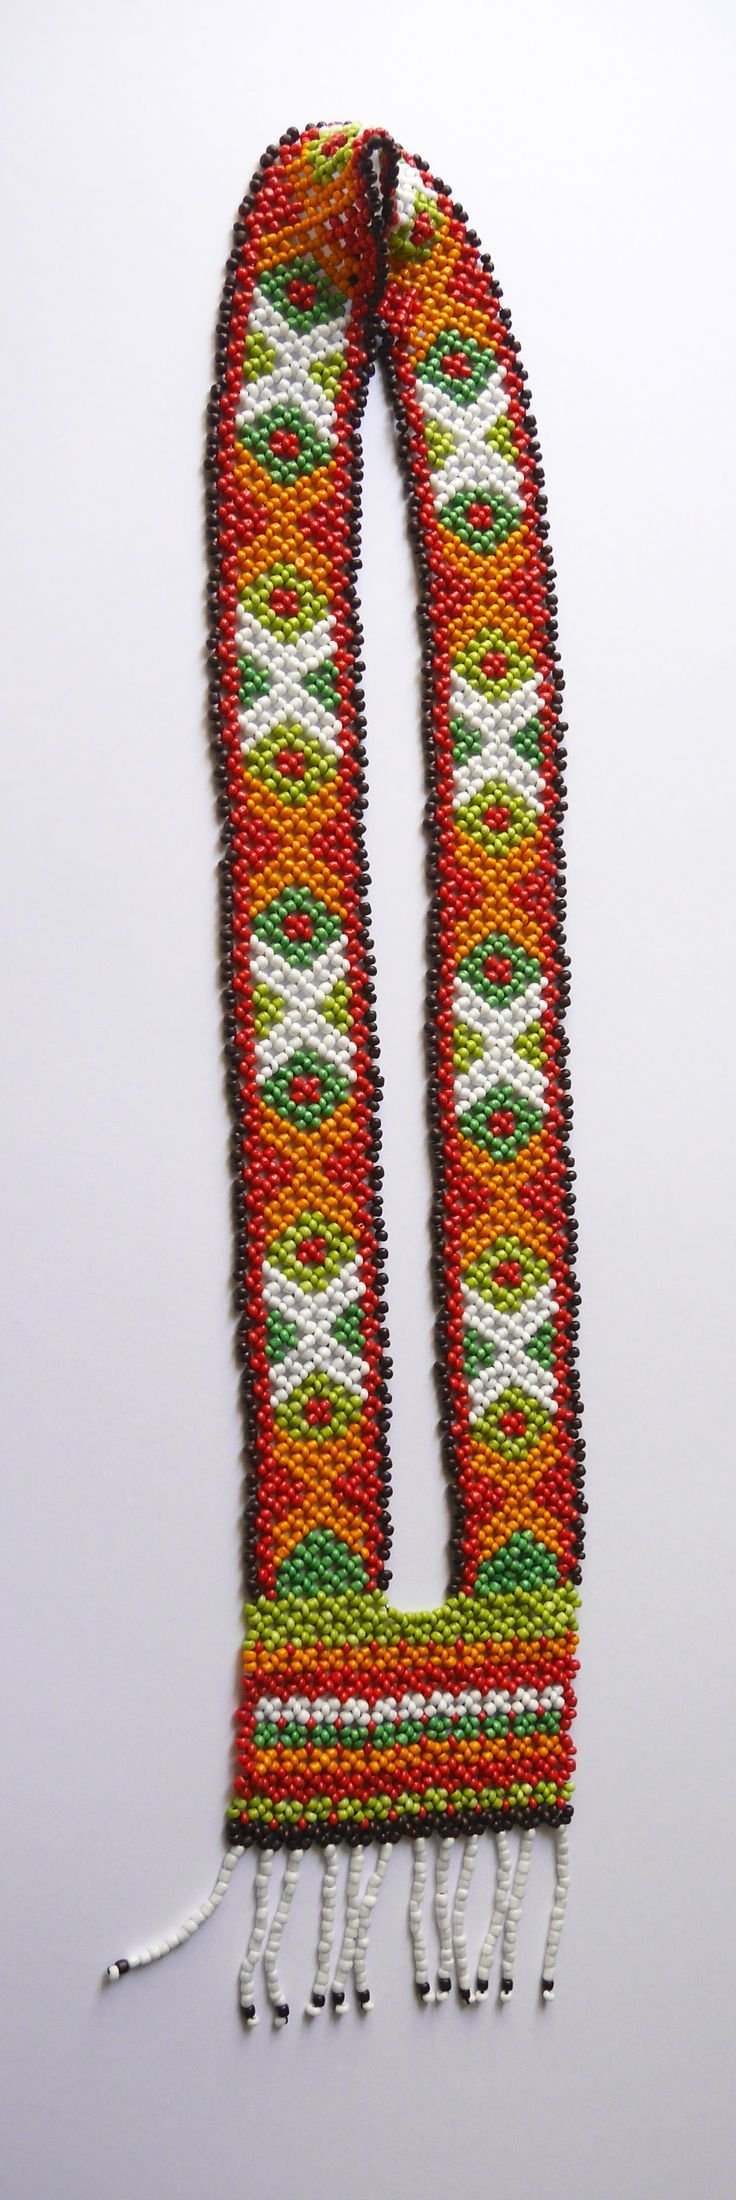 """Beaded necklace """"Crosstich Gaitan"""". Made by me on request from Alla Denissova, a fashion line designer for Alla Denissova Russian Traditional Costumes (http://www.alladenissova.com). Made off the picture of an authentic article."""